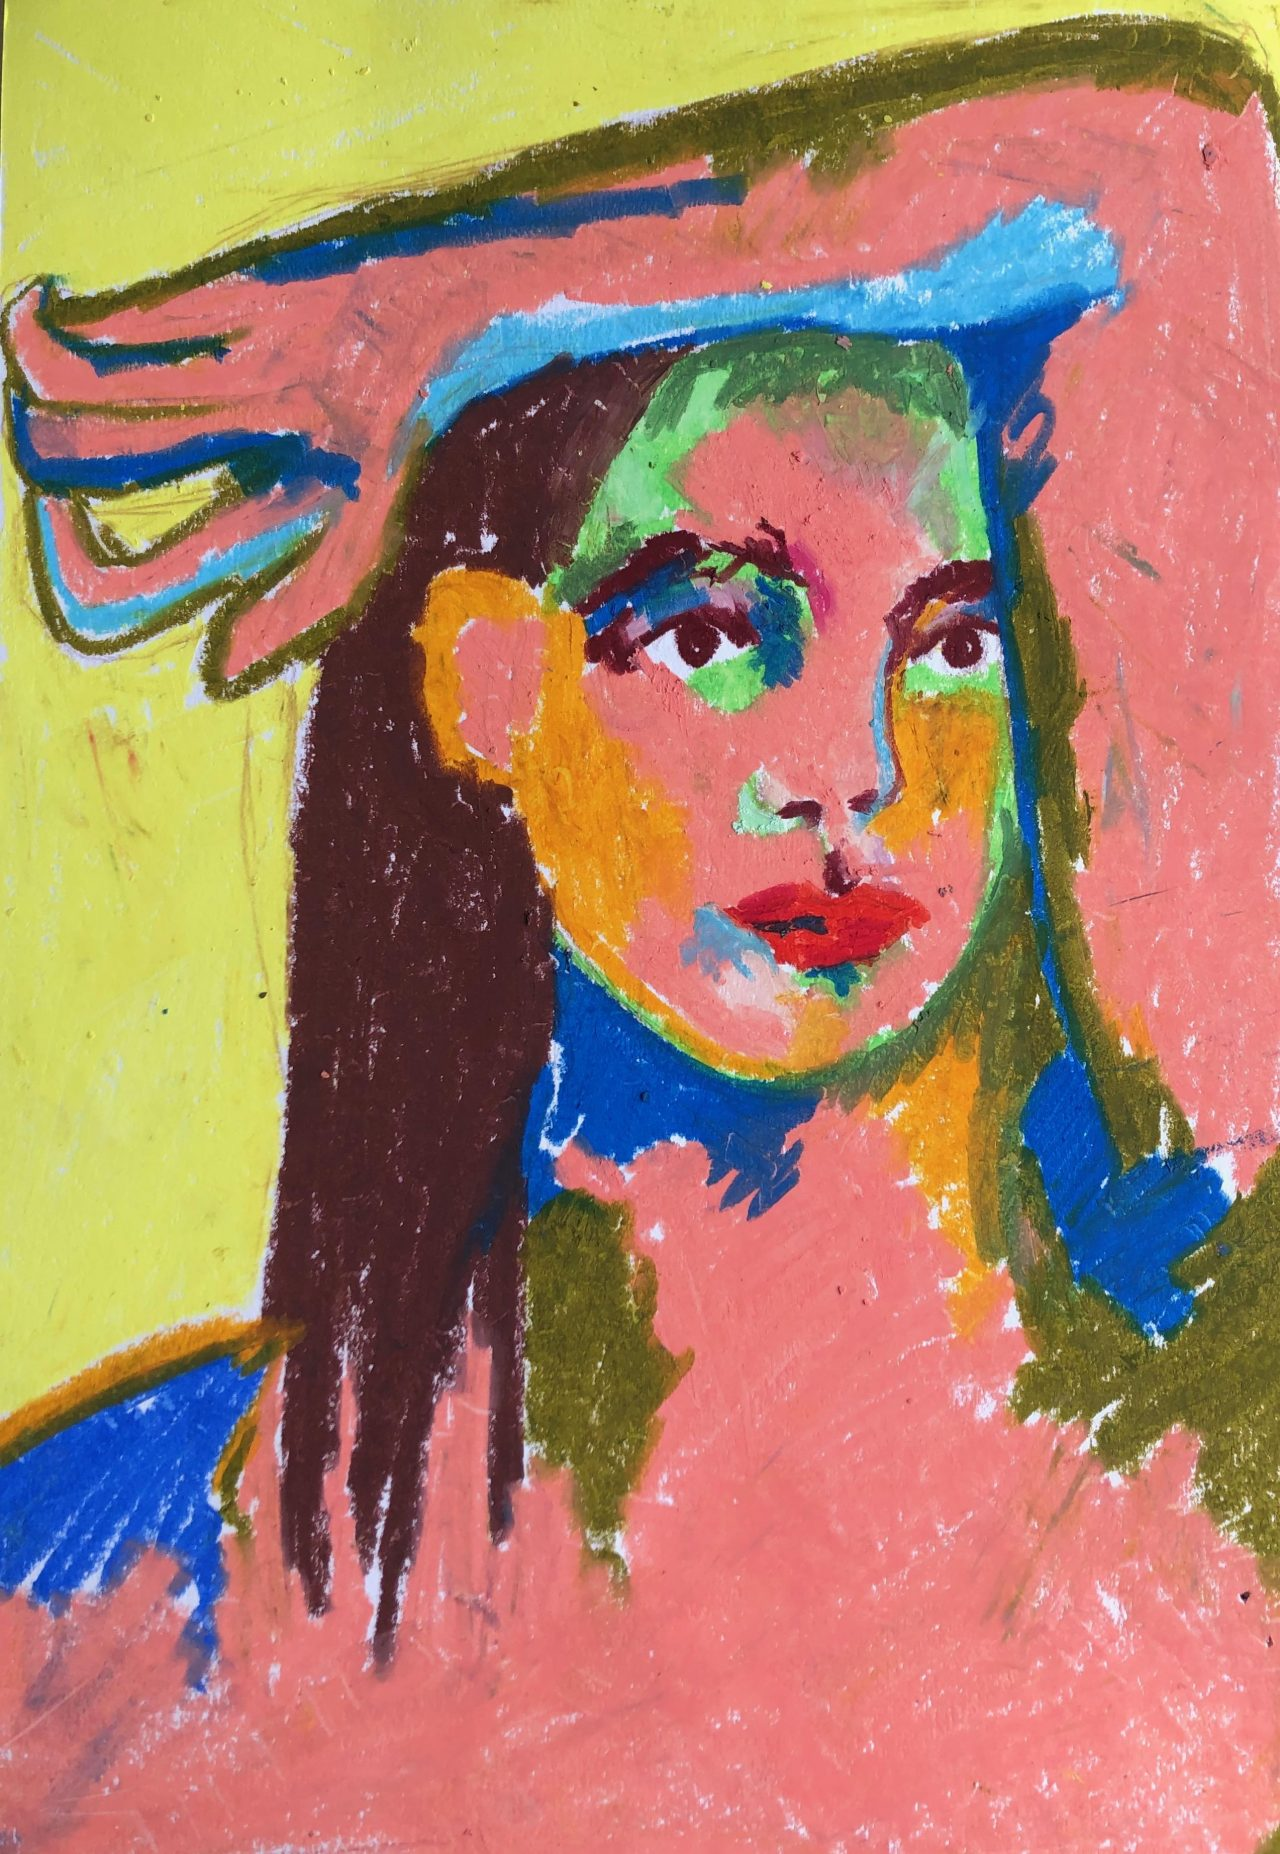 Colourful portrait oil pastel sketch by Selby Hurst Inglefield